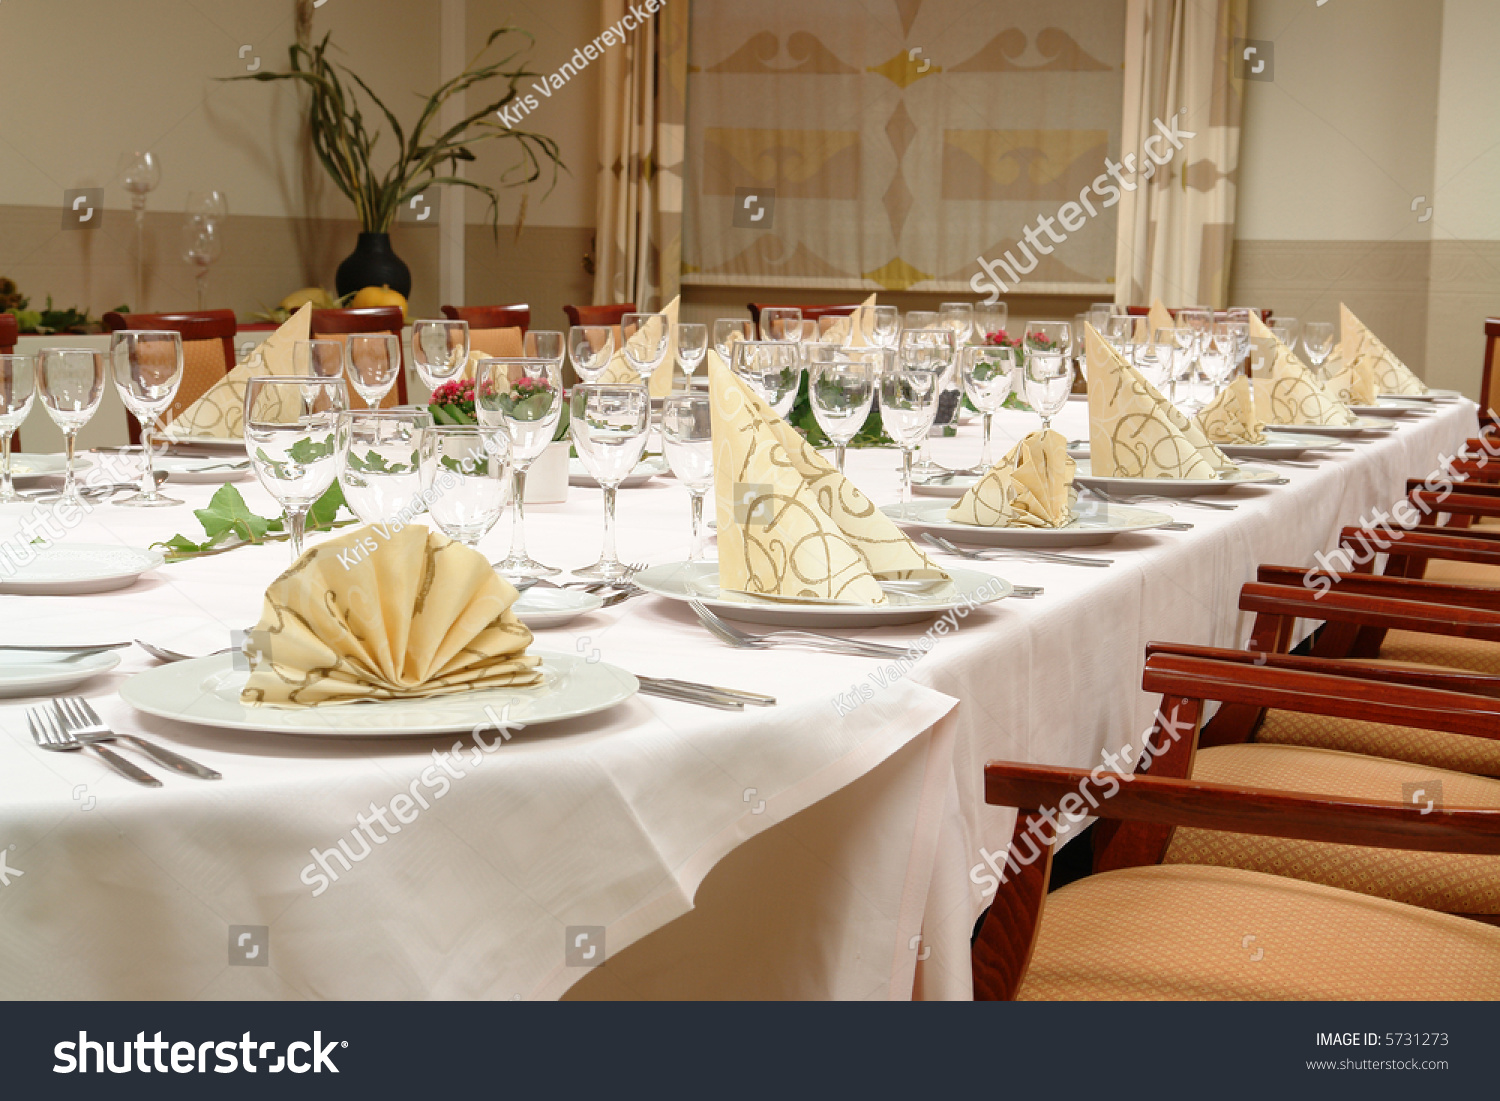 Restaurant table setup - Table Setting Large Dinner Table Set Up For A Lot Of People